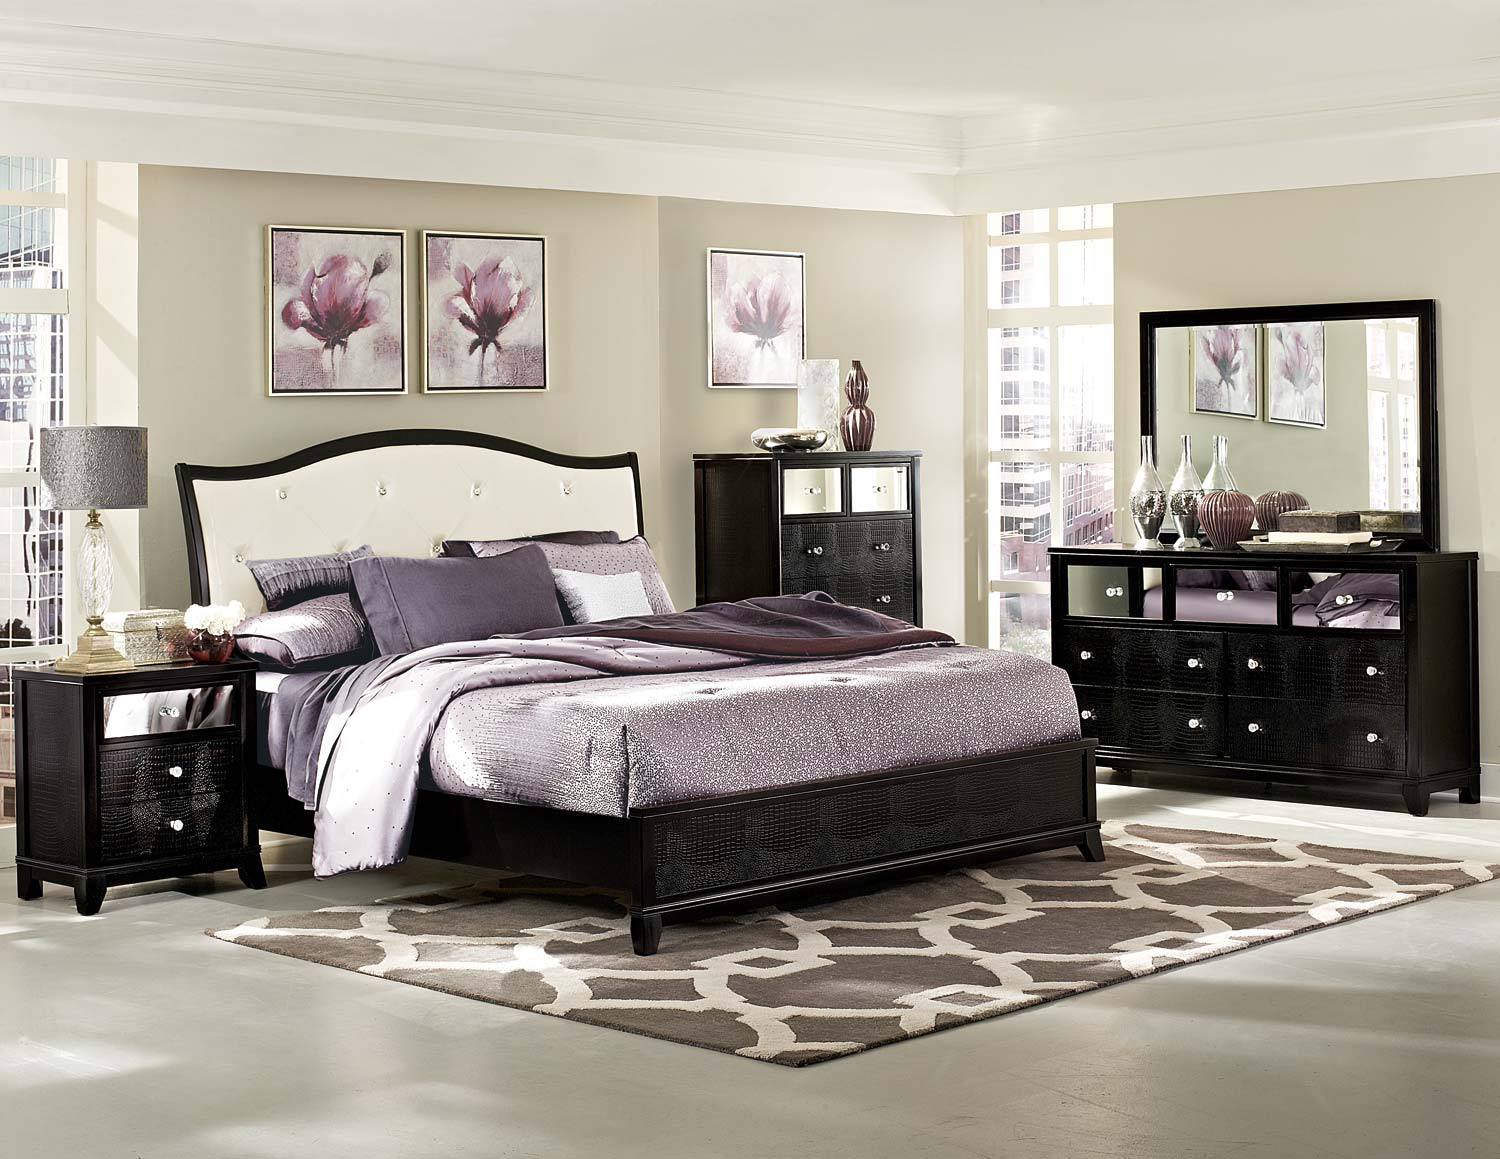 upholstered bedroom furniture homelegance jacqueline upholstered bedroom collection 13696